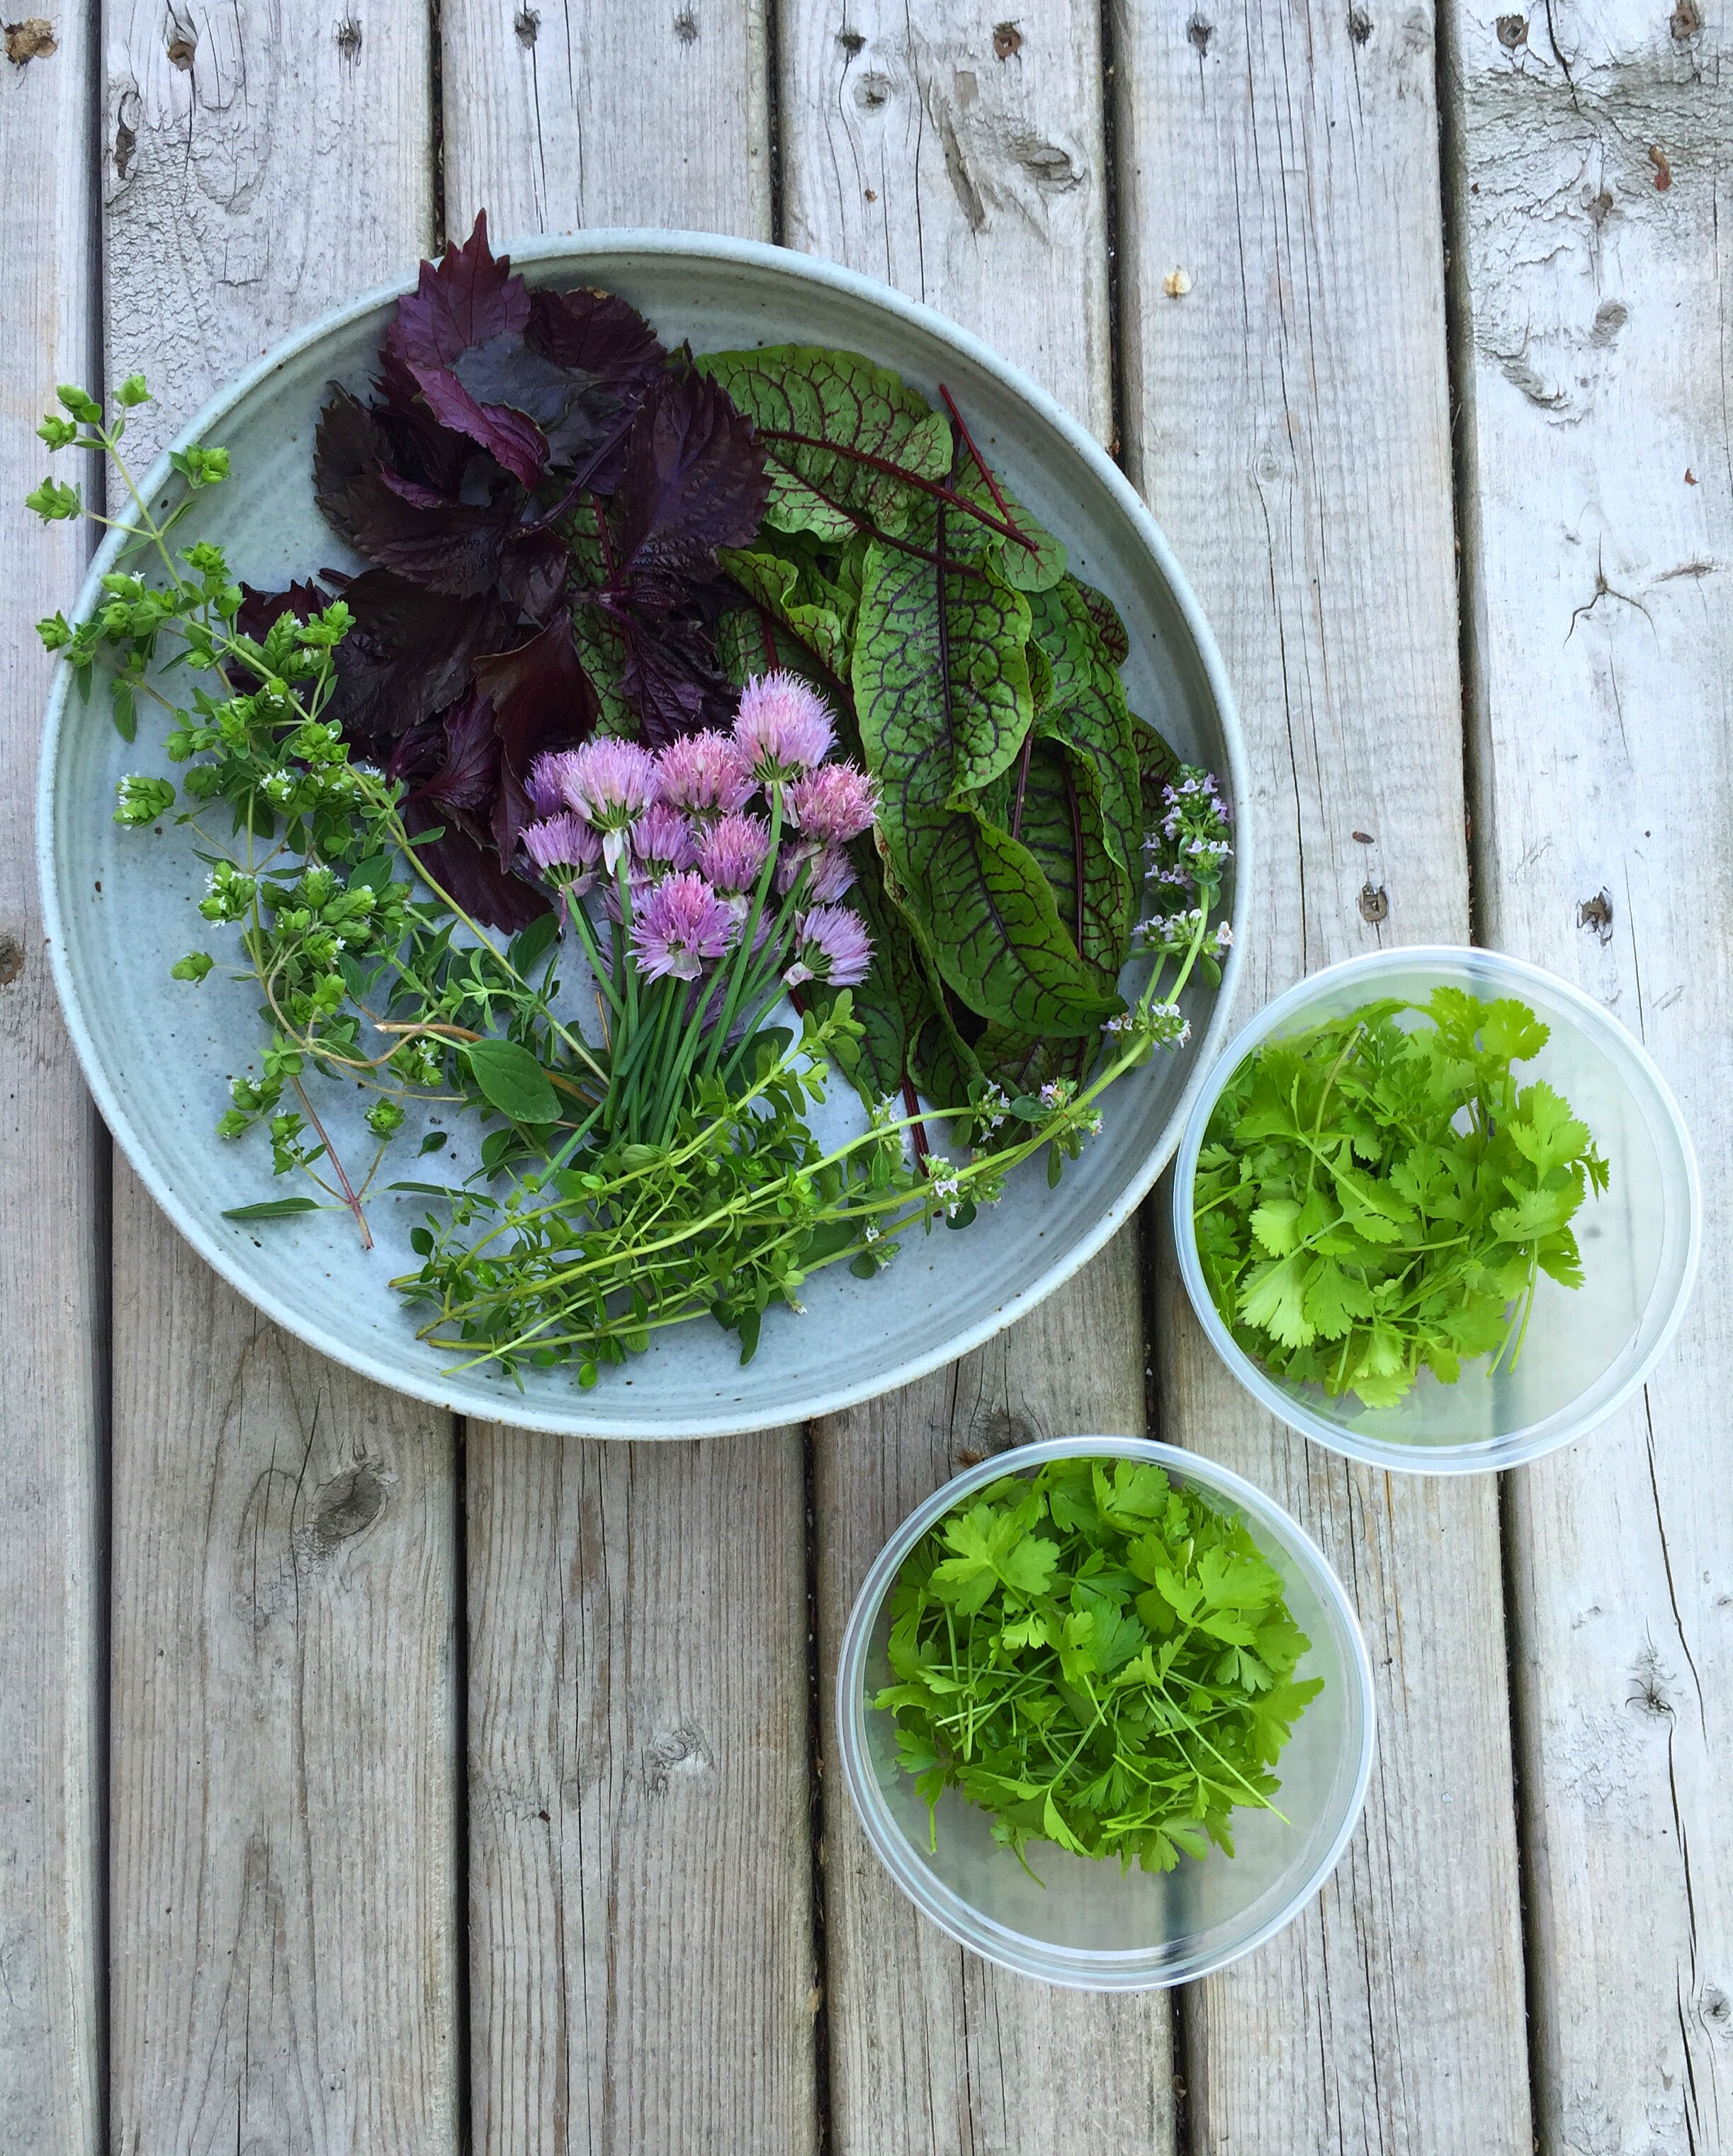 Herbs from my garden for garnish